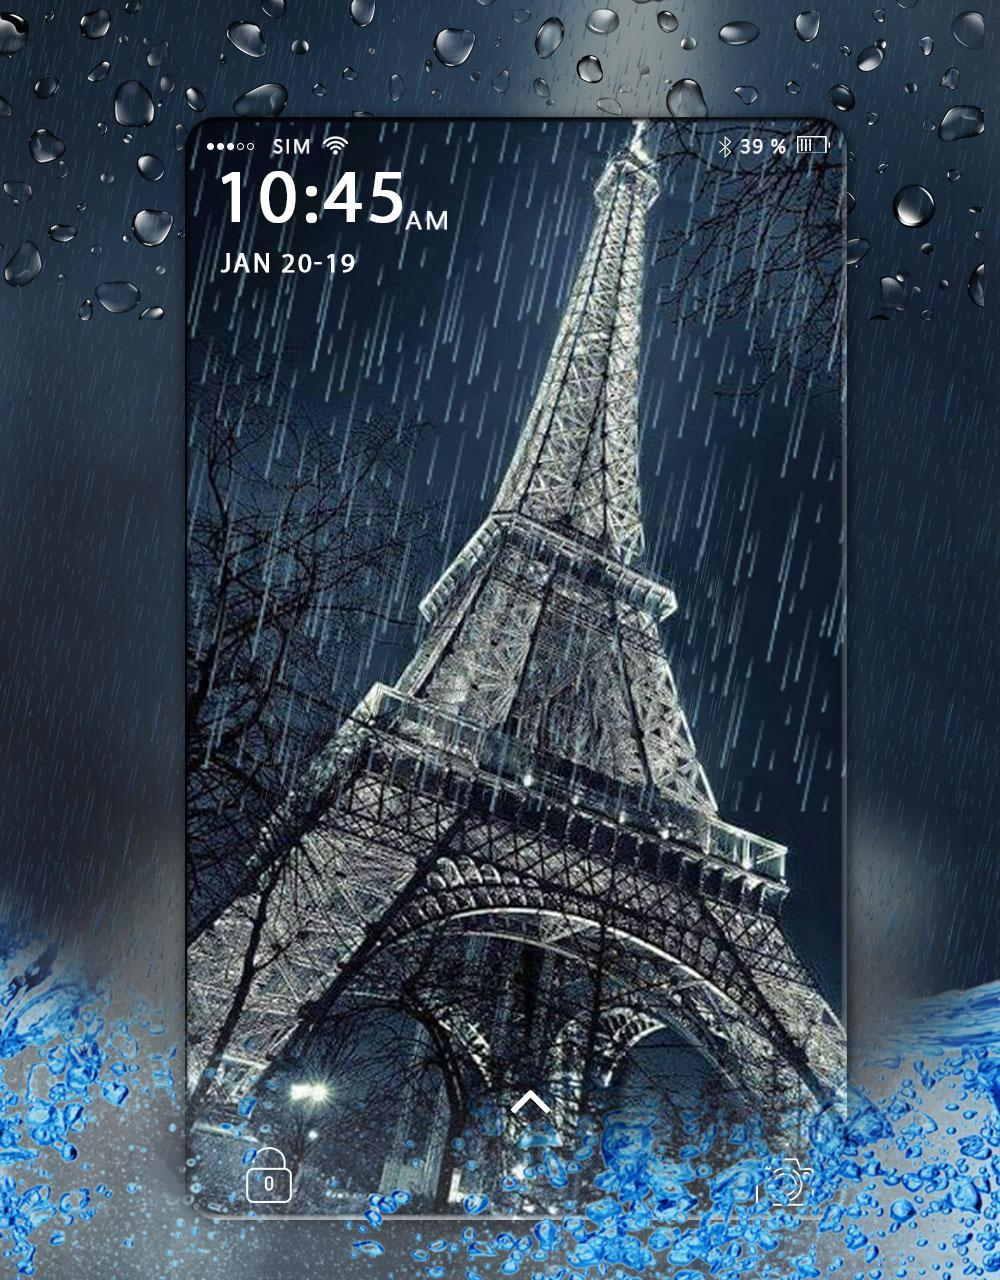 Rain Live Wallpaper Hd Realistic Water Drop Effect For Android